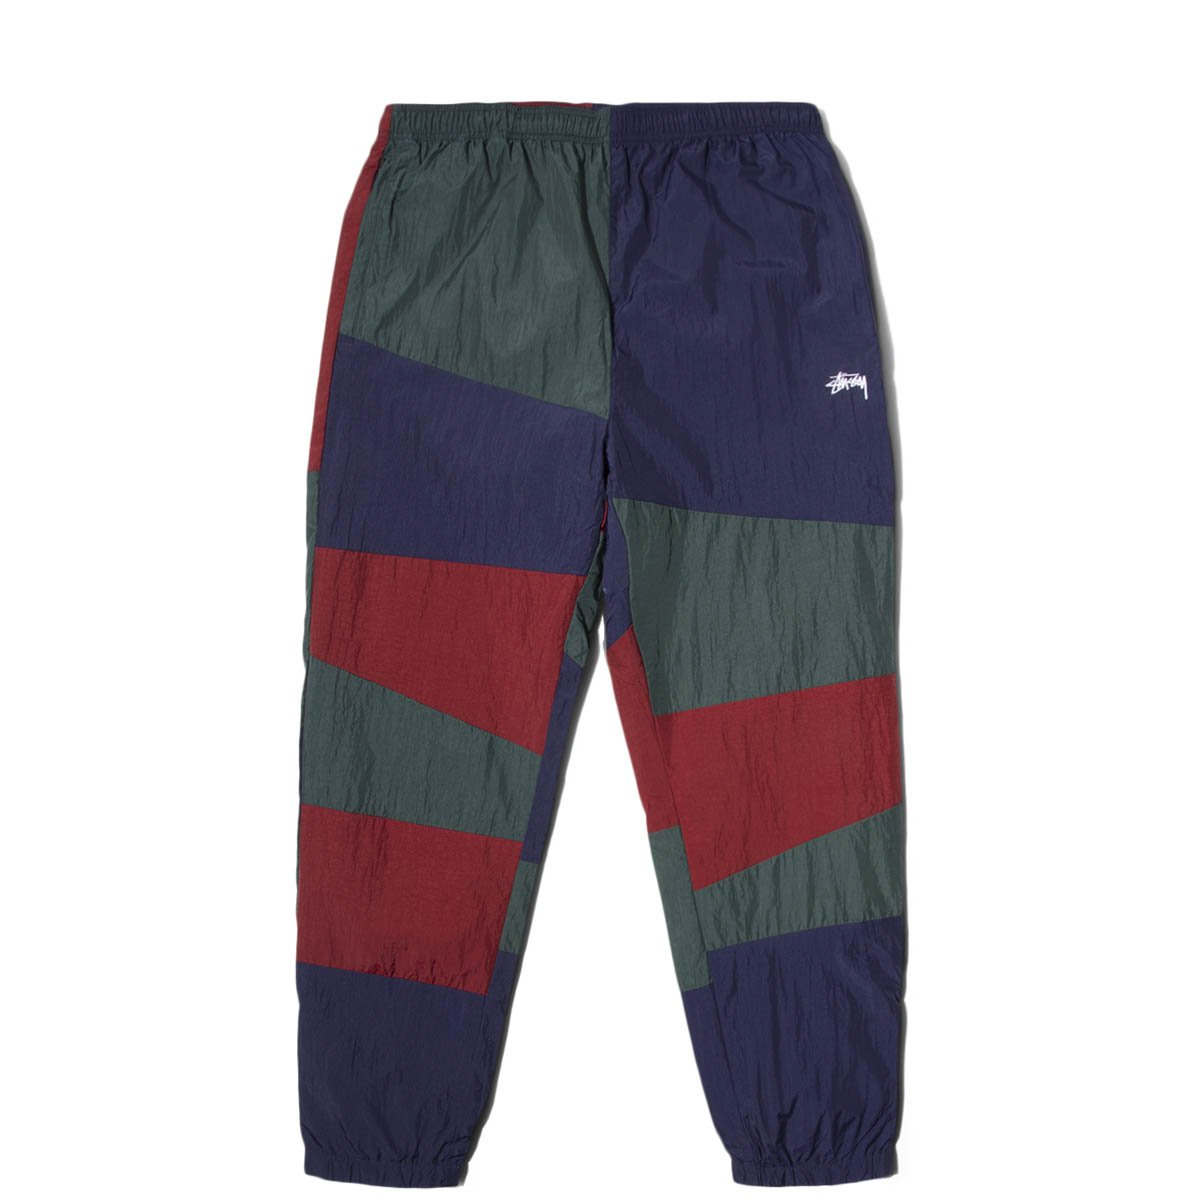 Stussy Bottoms PANEL TRACK PANT